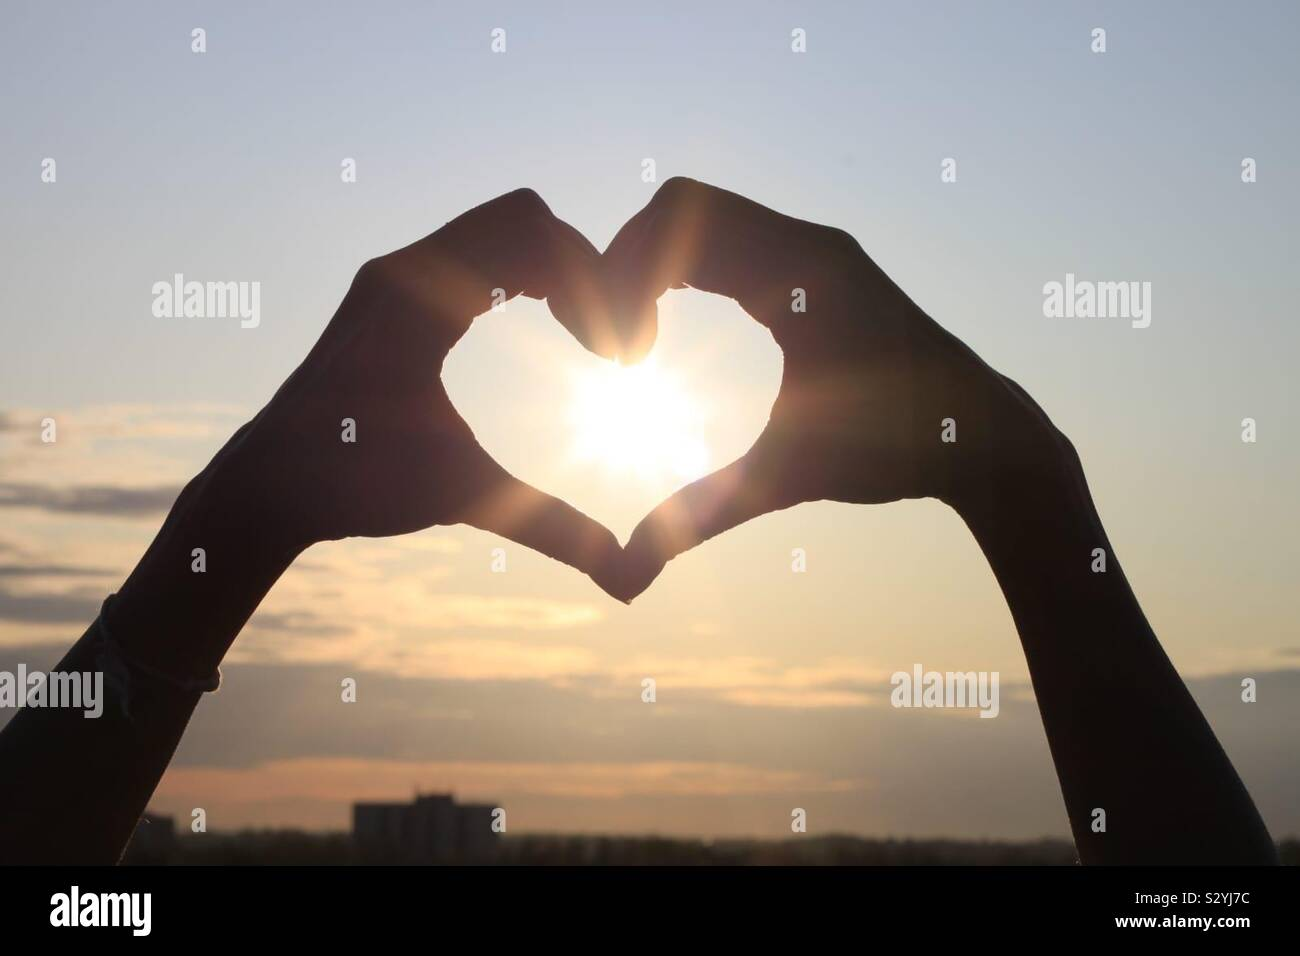 A persons hands forming a heart over the sun Stock Photo